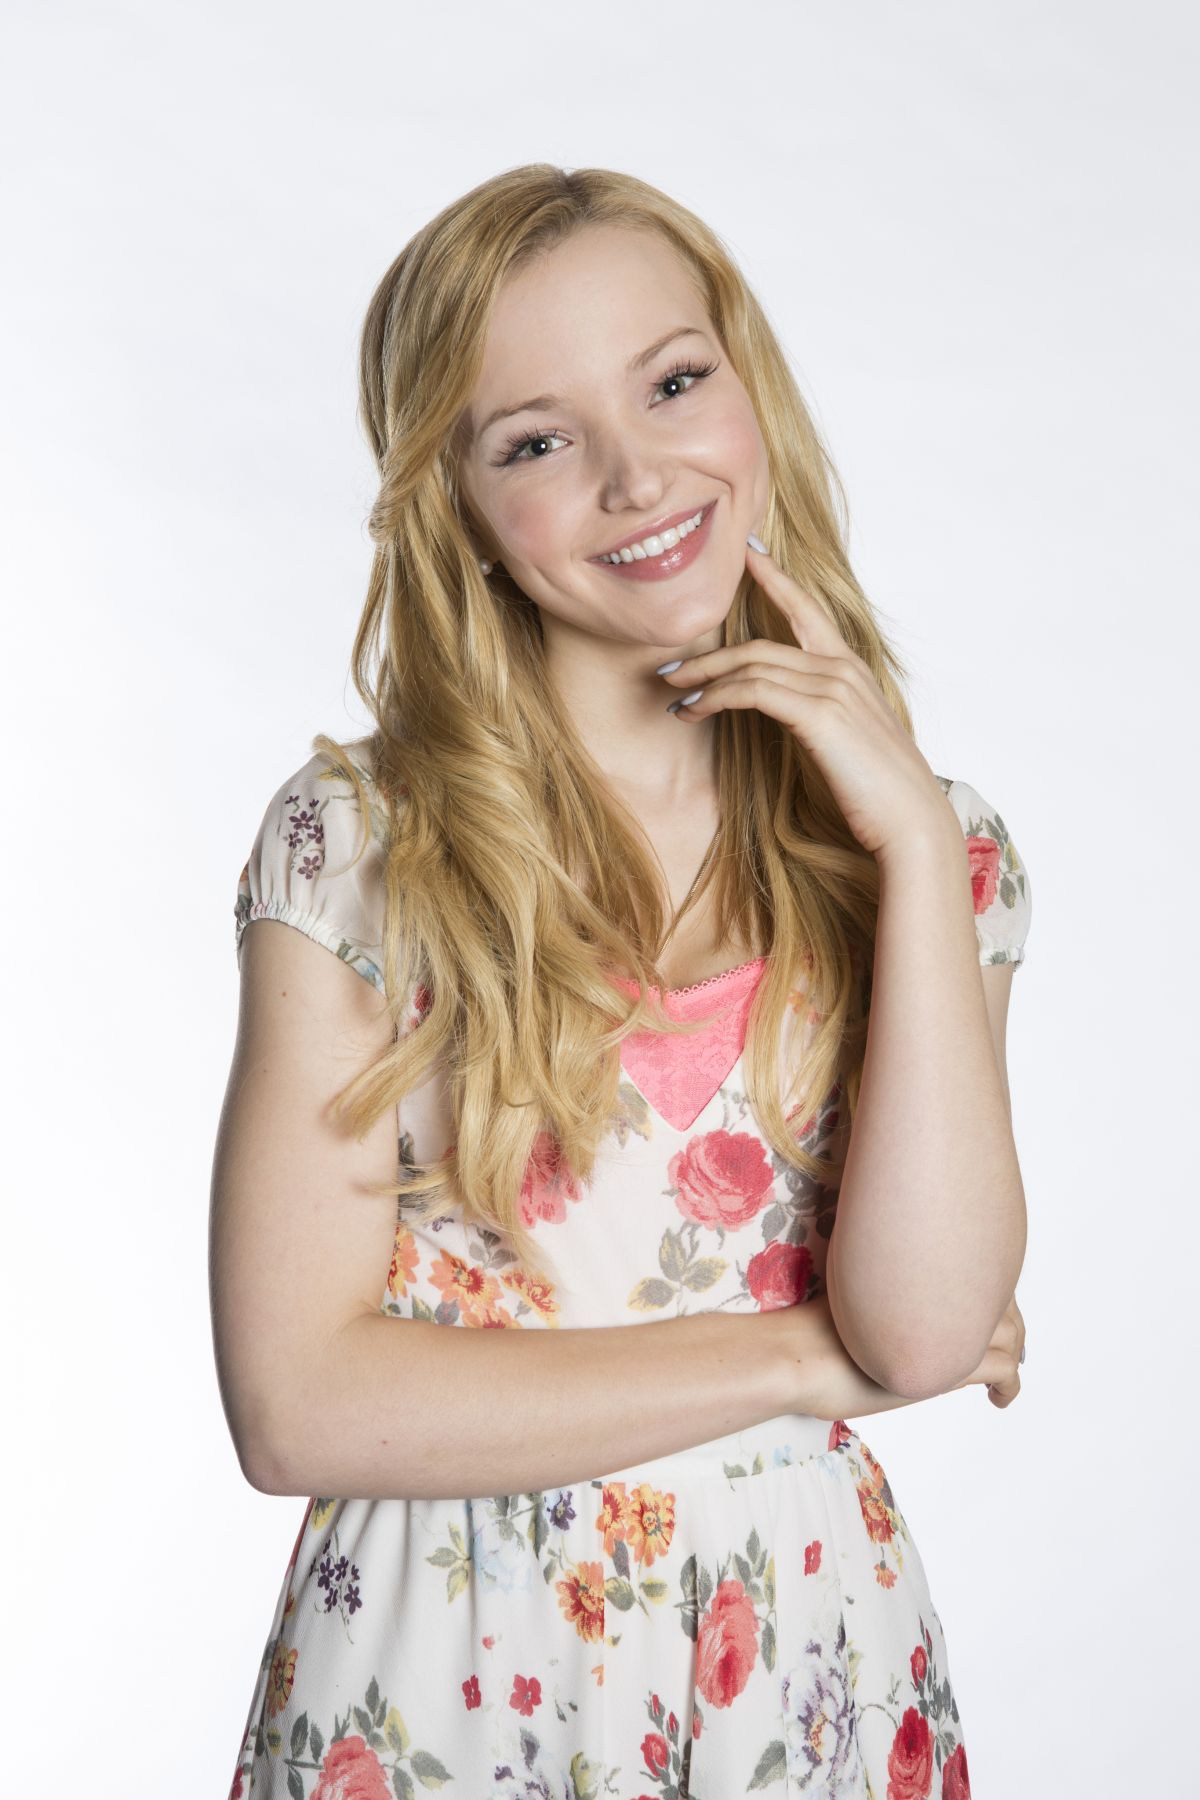 DOVE CAMERON - Cloud 9 Promos